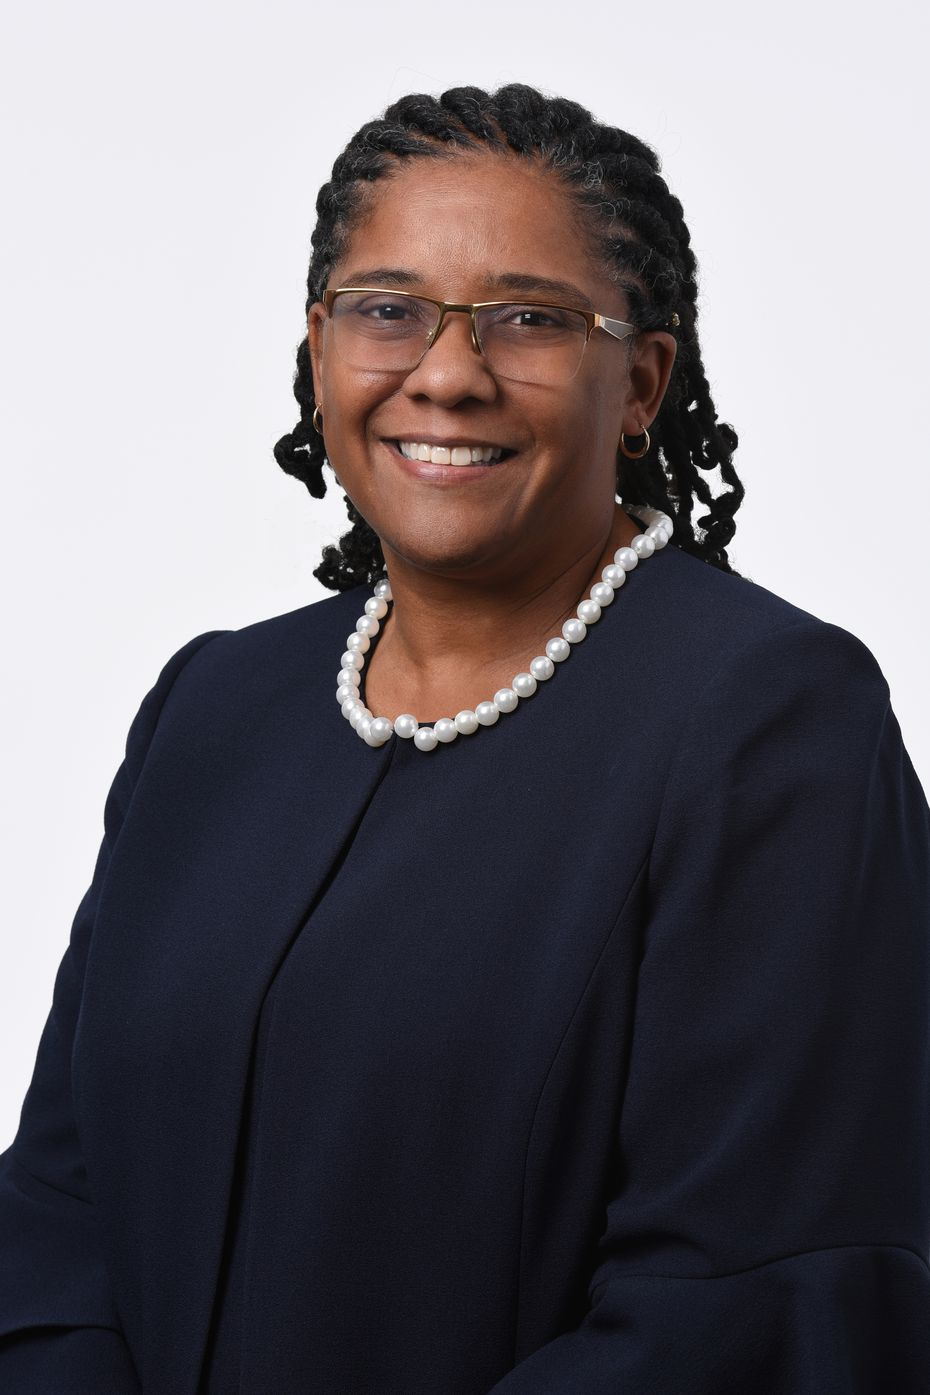 Georgette Kiser is a director of Jacobs Engineering Group Inc.